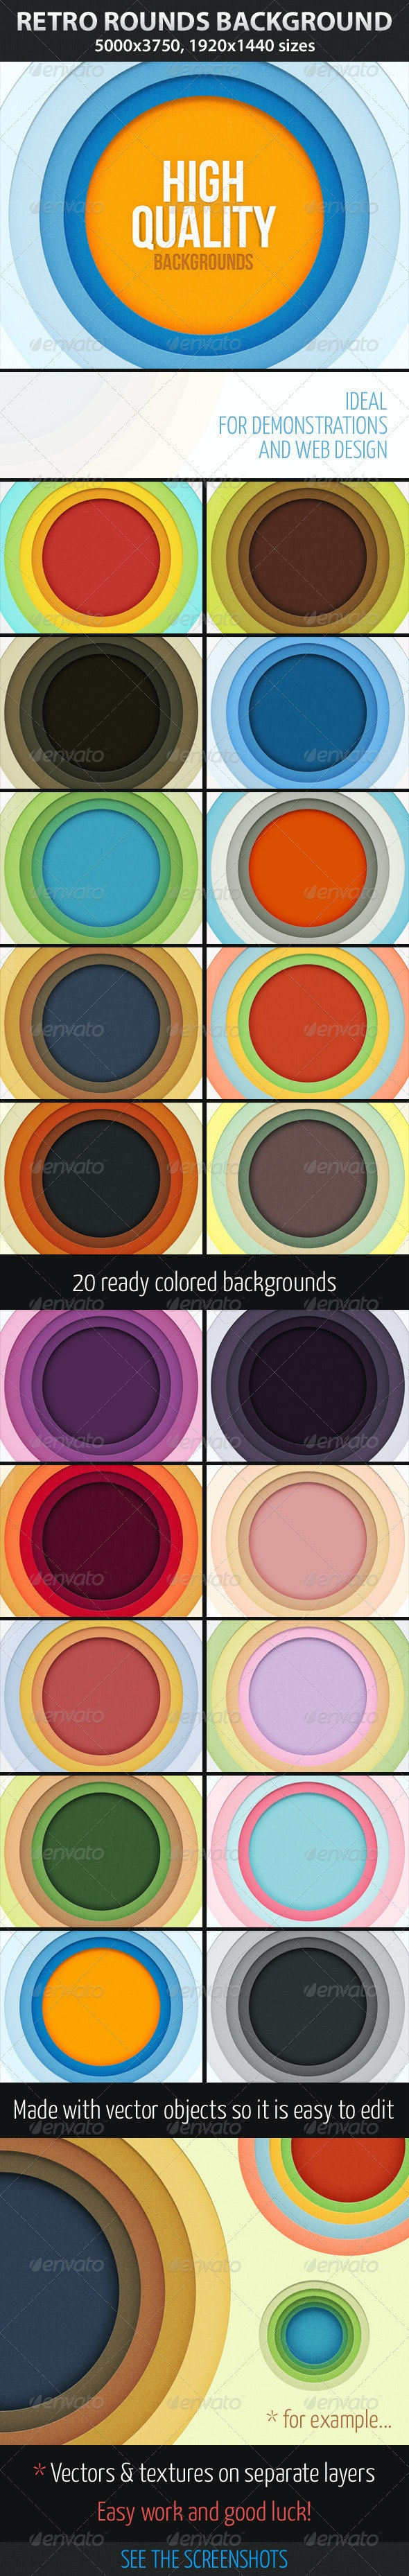 Retro Rounds Background - Backgrounds Graphics